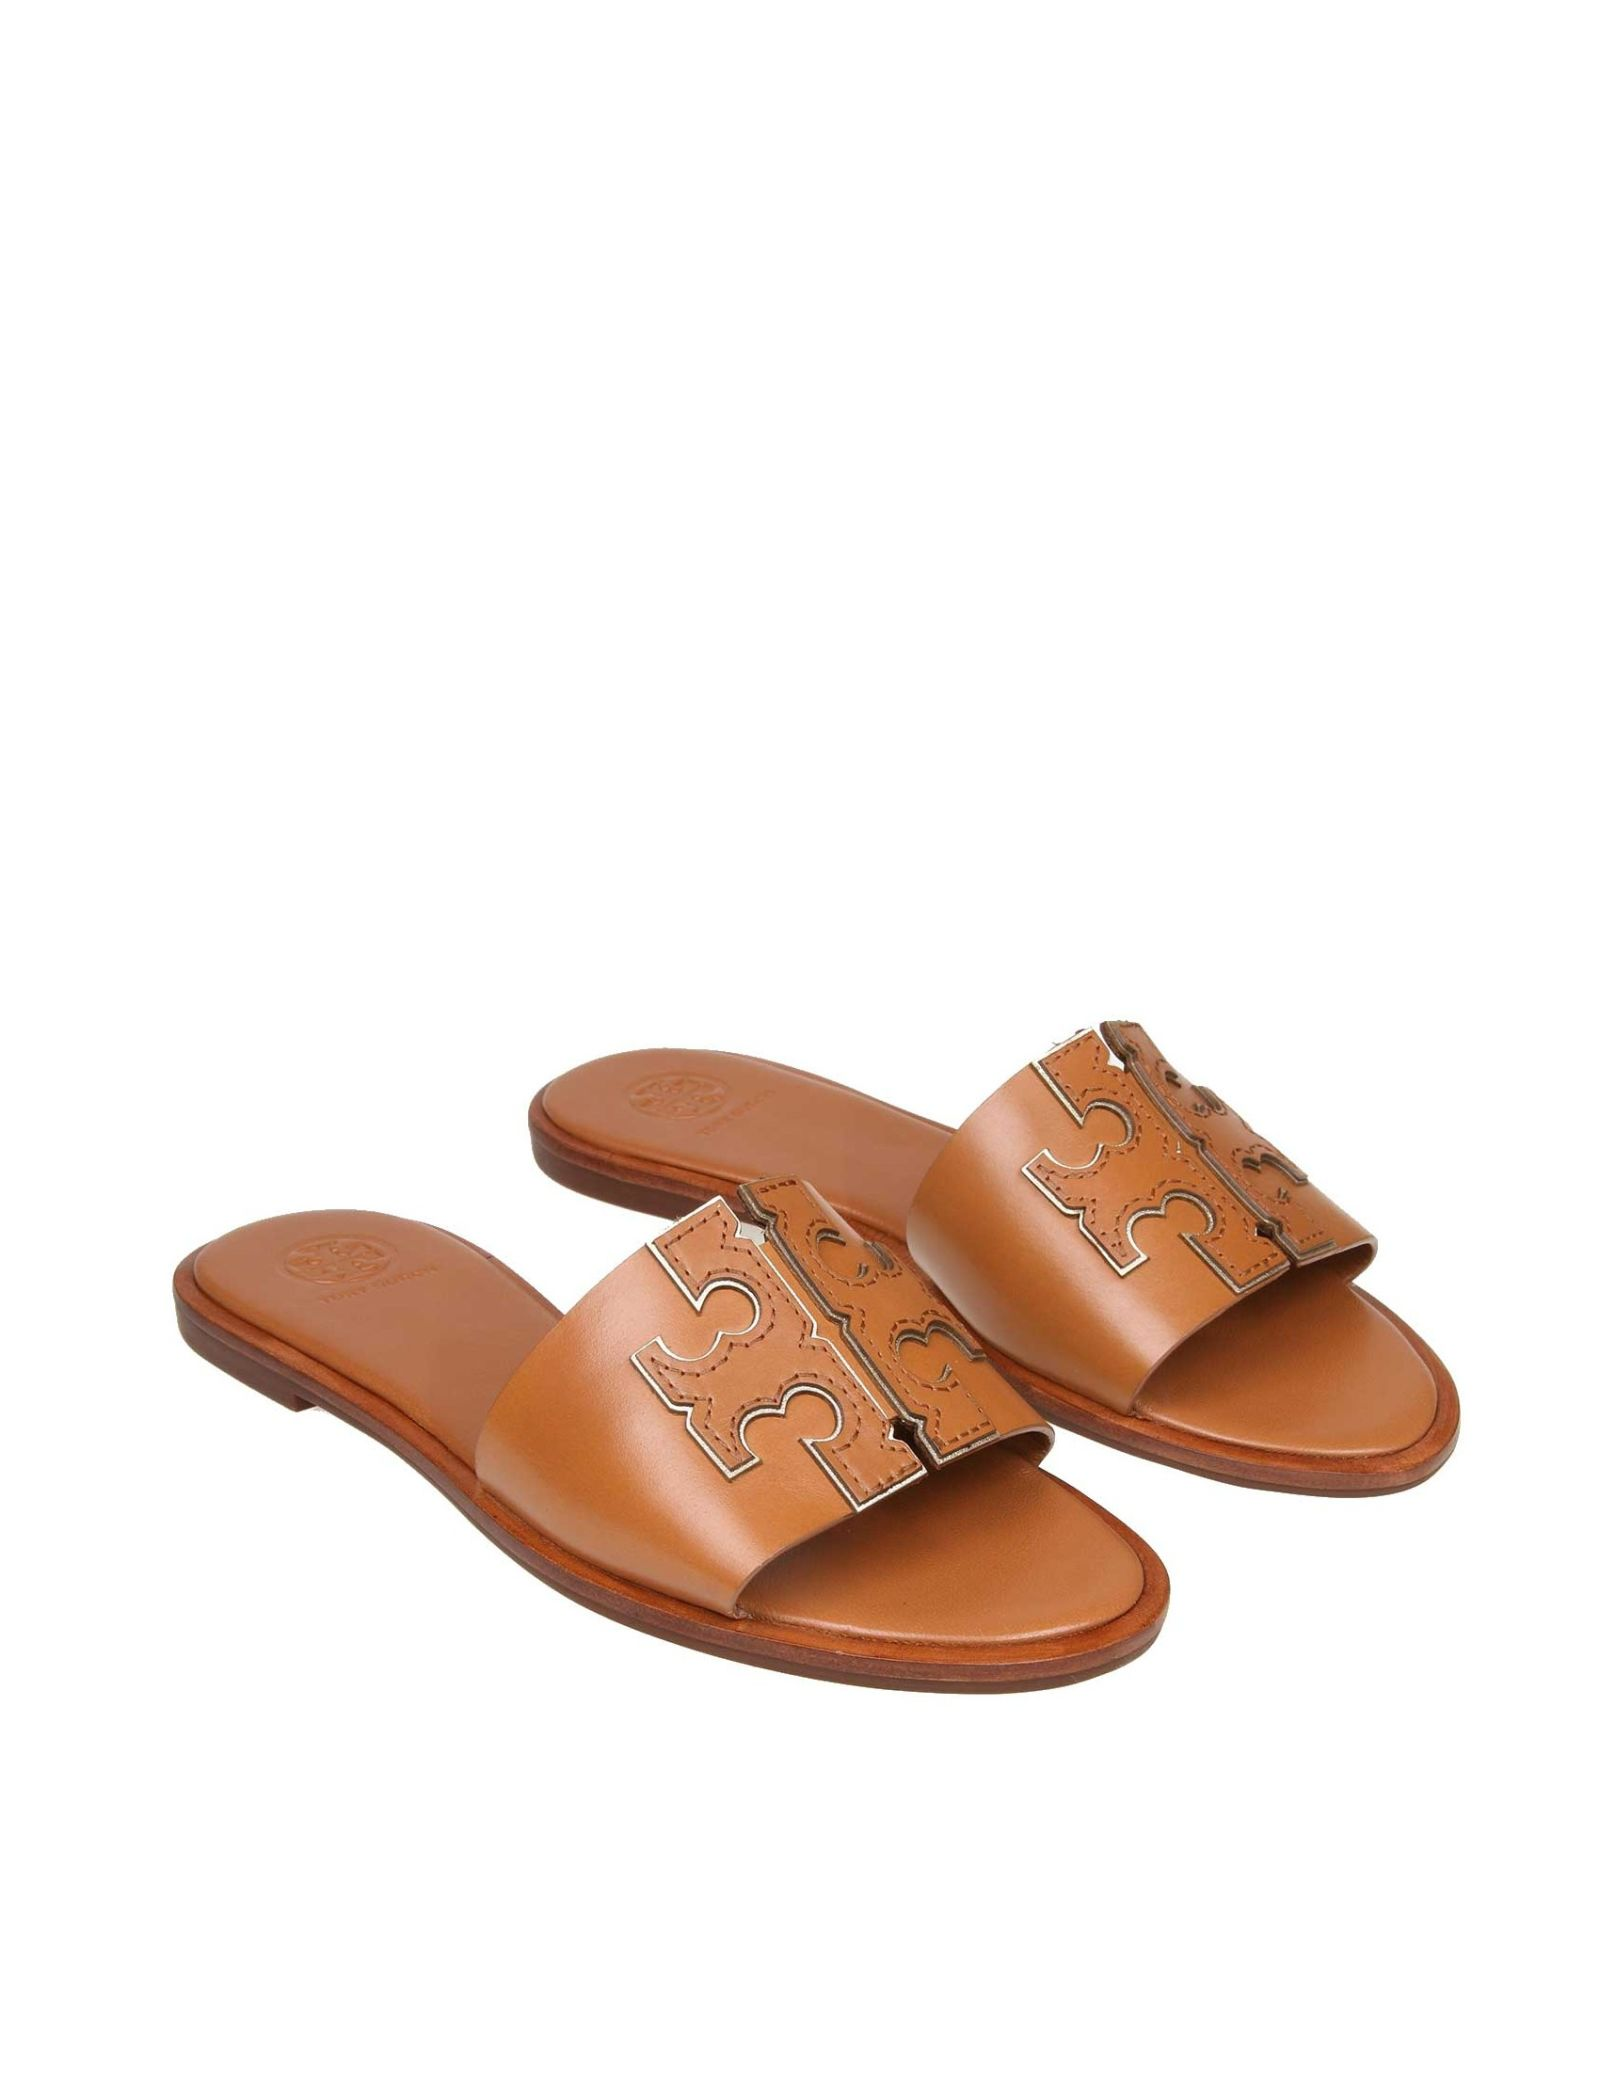 7daa16fe346b Tory Burch Tory Burch Ines Leather Sandals In Leather Color - Brown ...